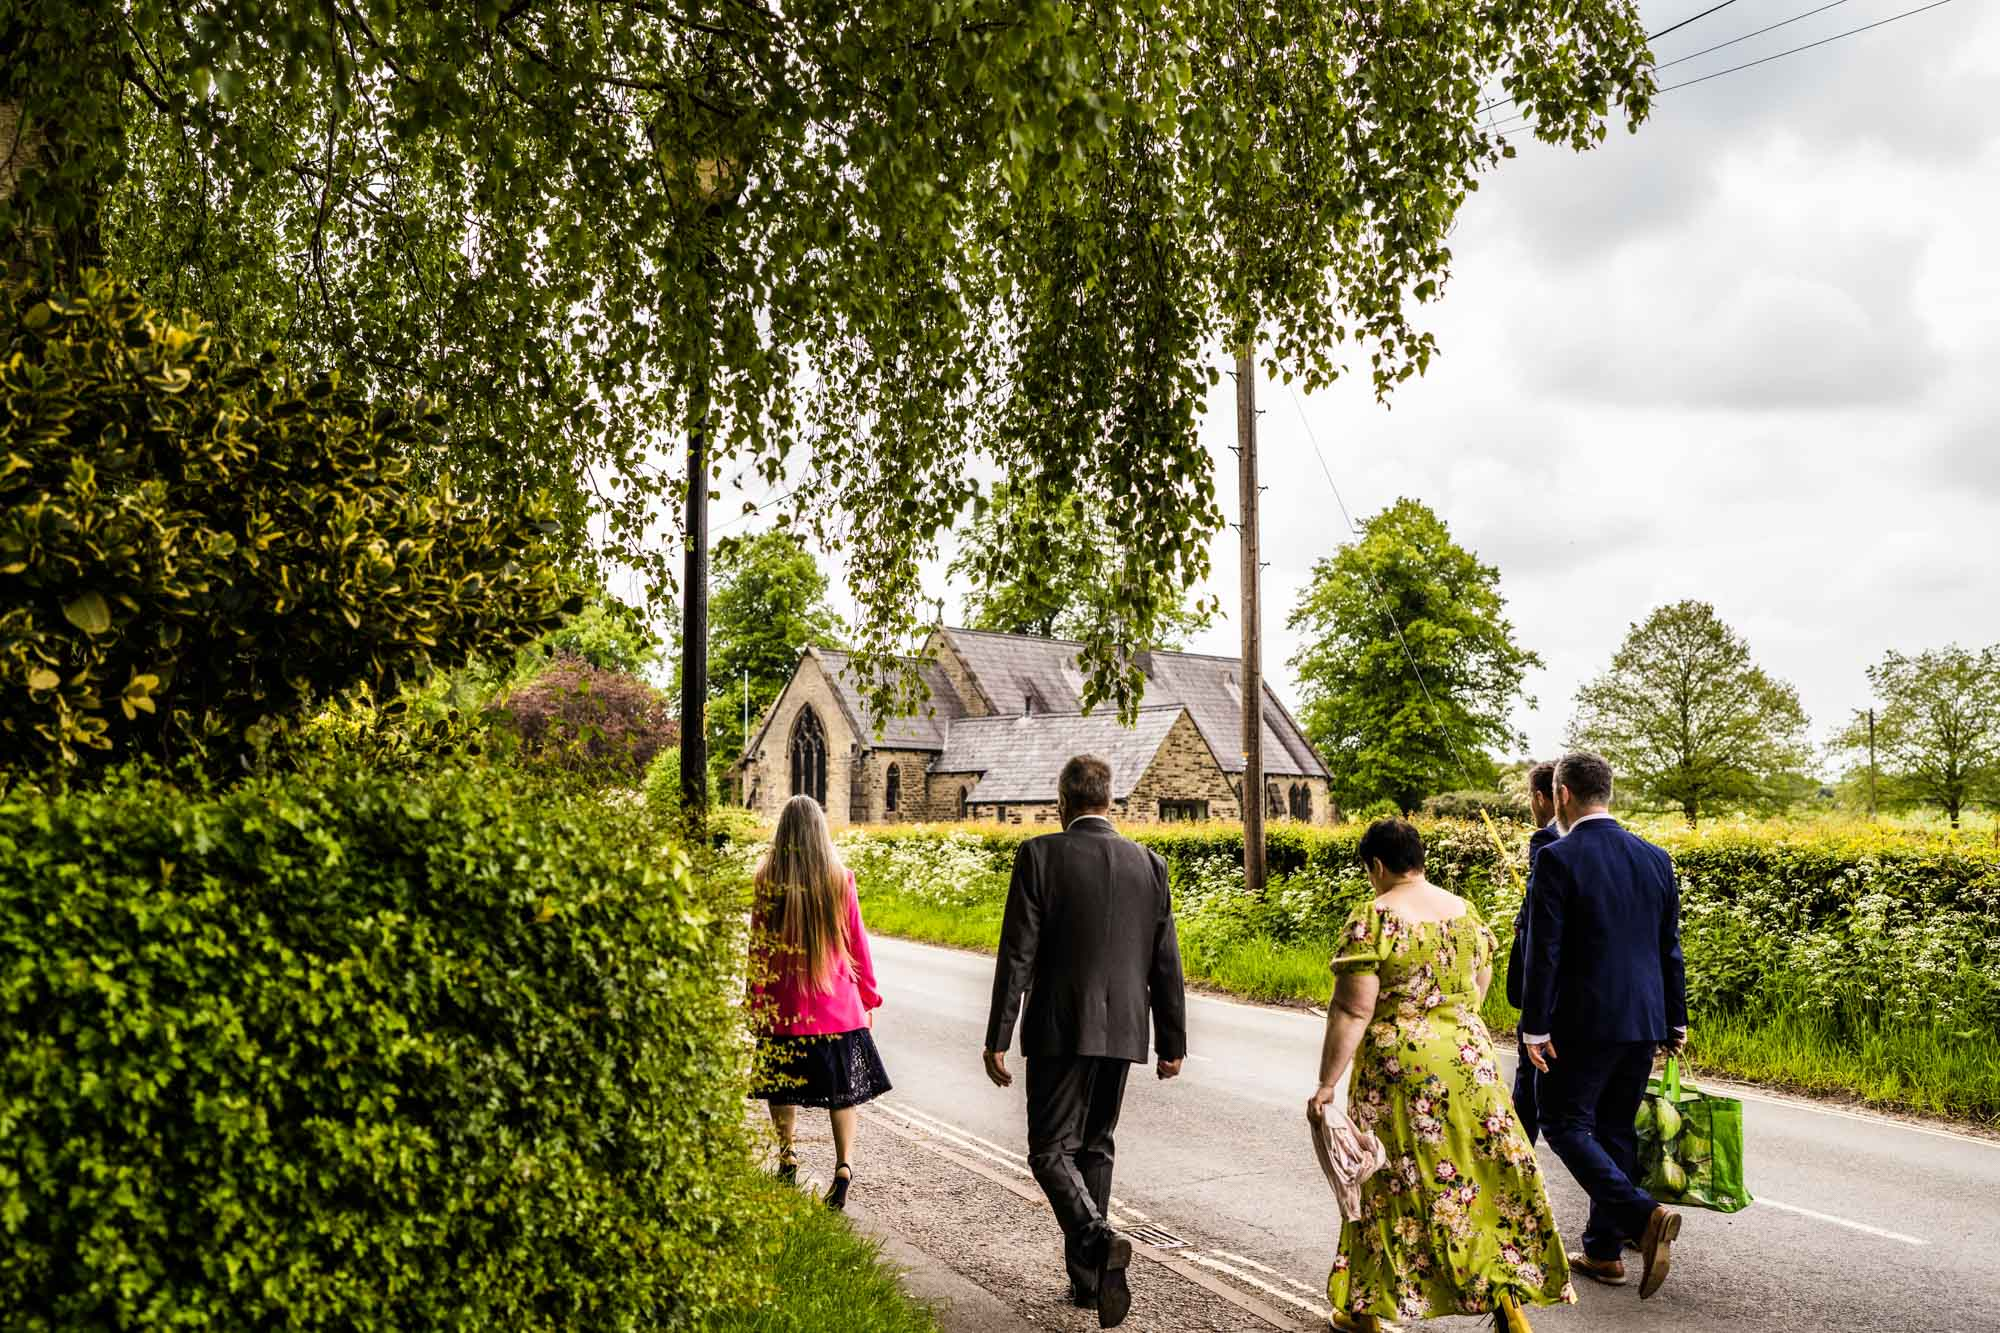 Guests walking to St Marks Dunham Massey